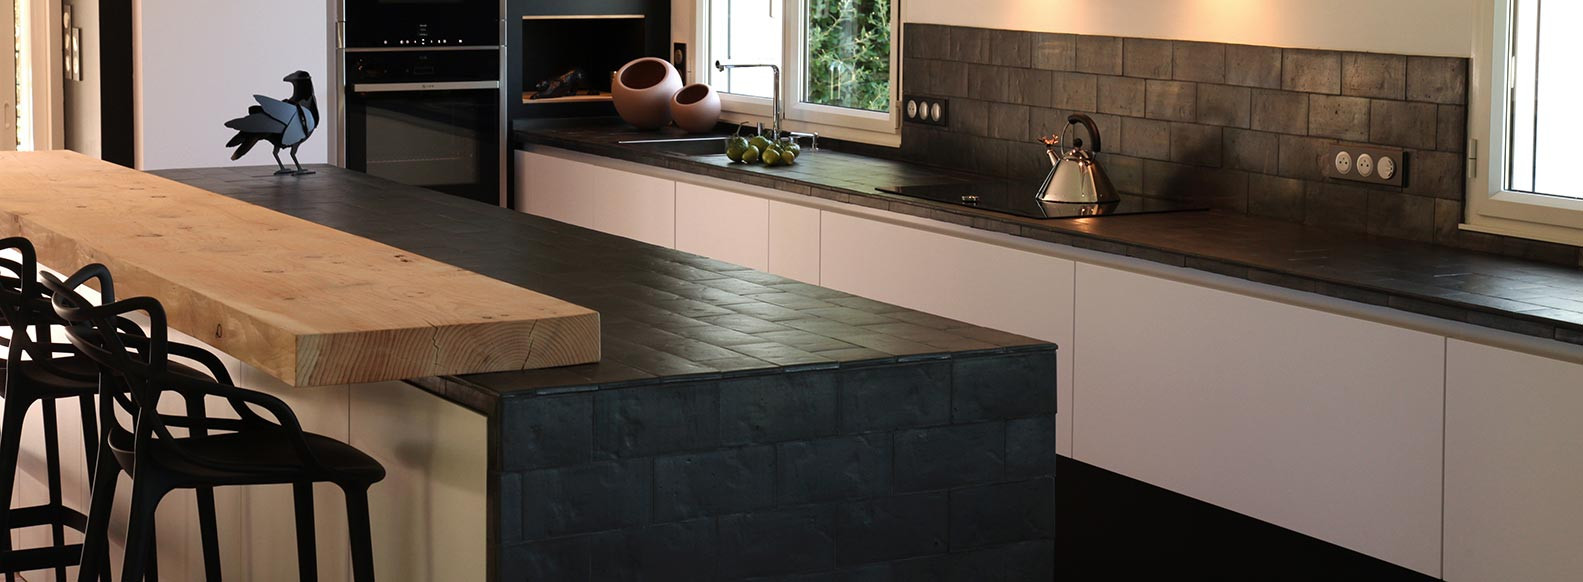 Rectangular ceramic tiles for your kitchen